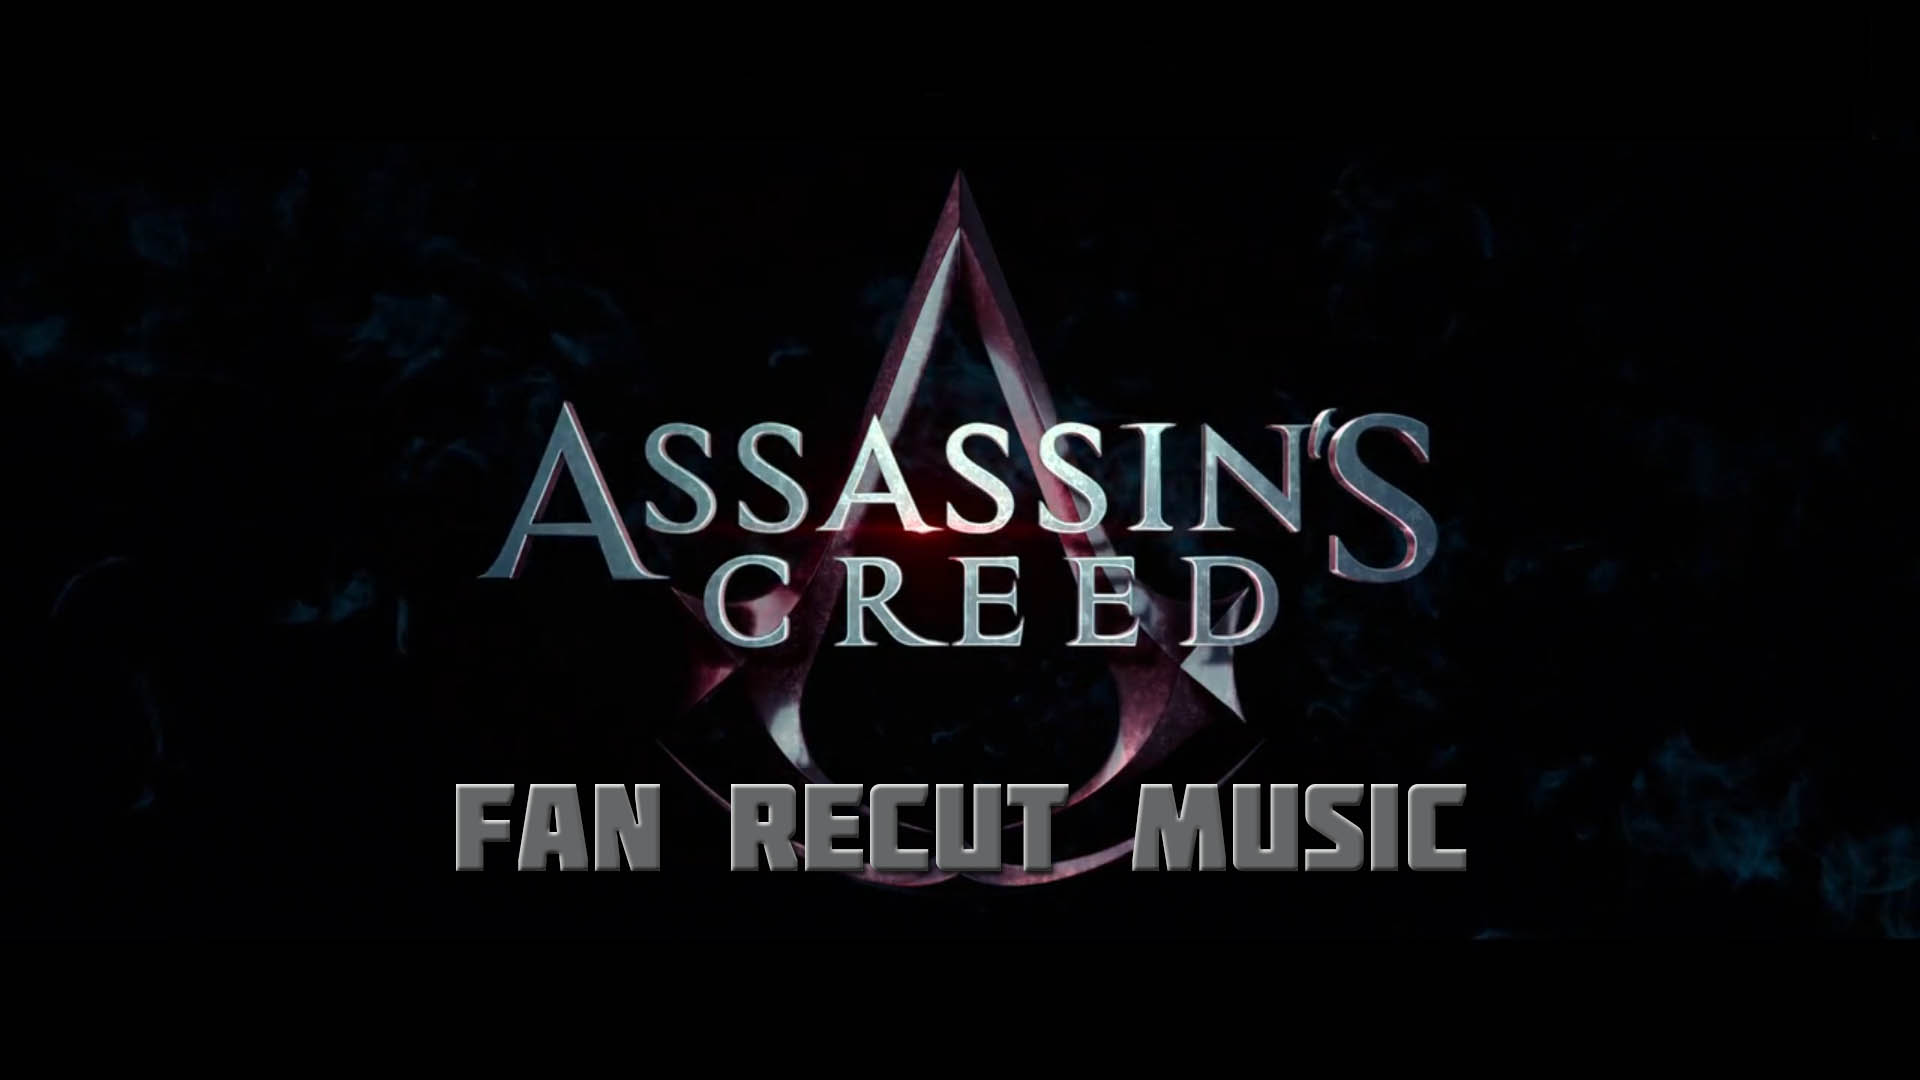 "Assasins Creed"" (Fan Recut Music)"